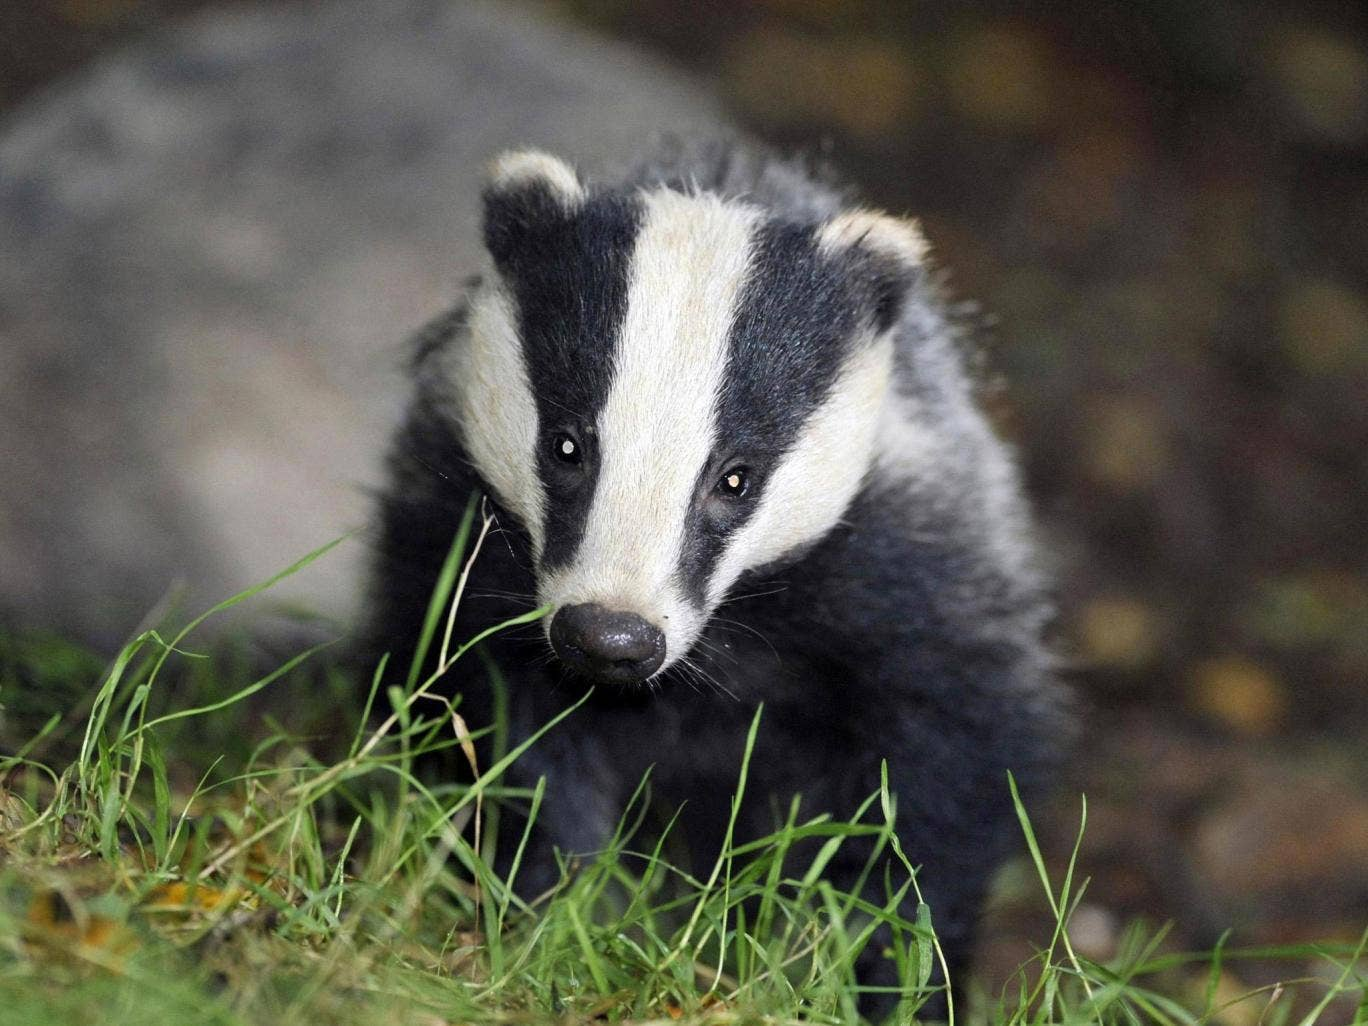 The trial needed to kill 70 per cent of the badger population to be effective. So far, it has only managed to eliminate 30 per cent